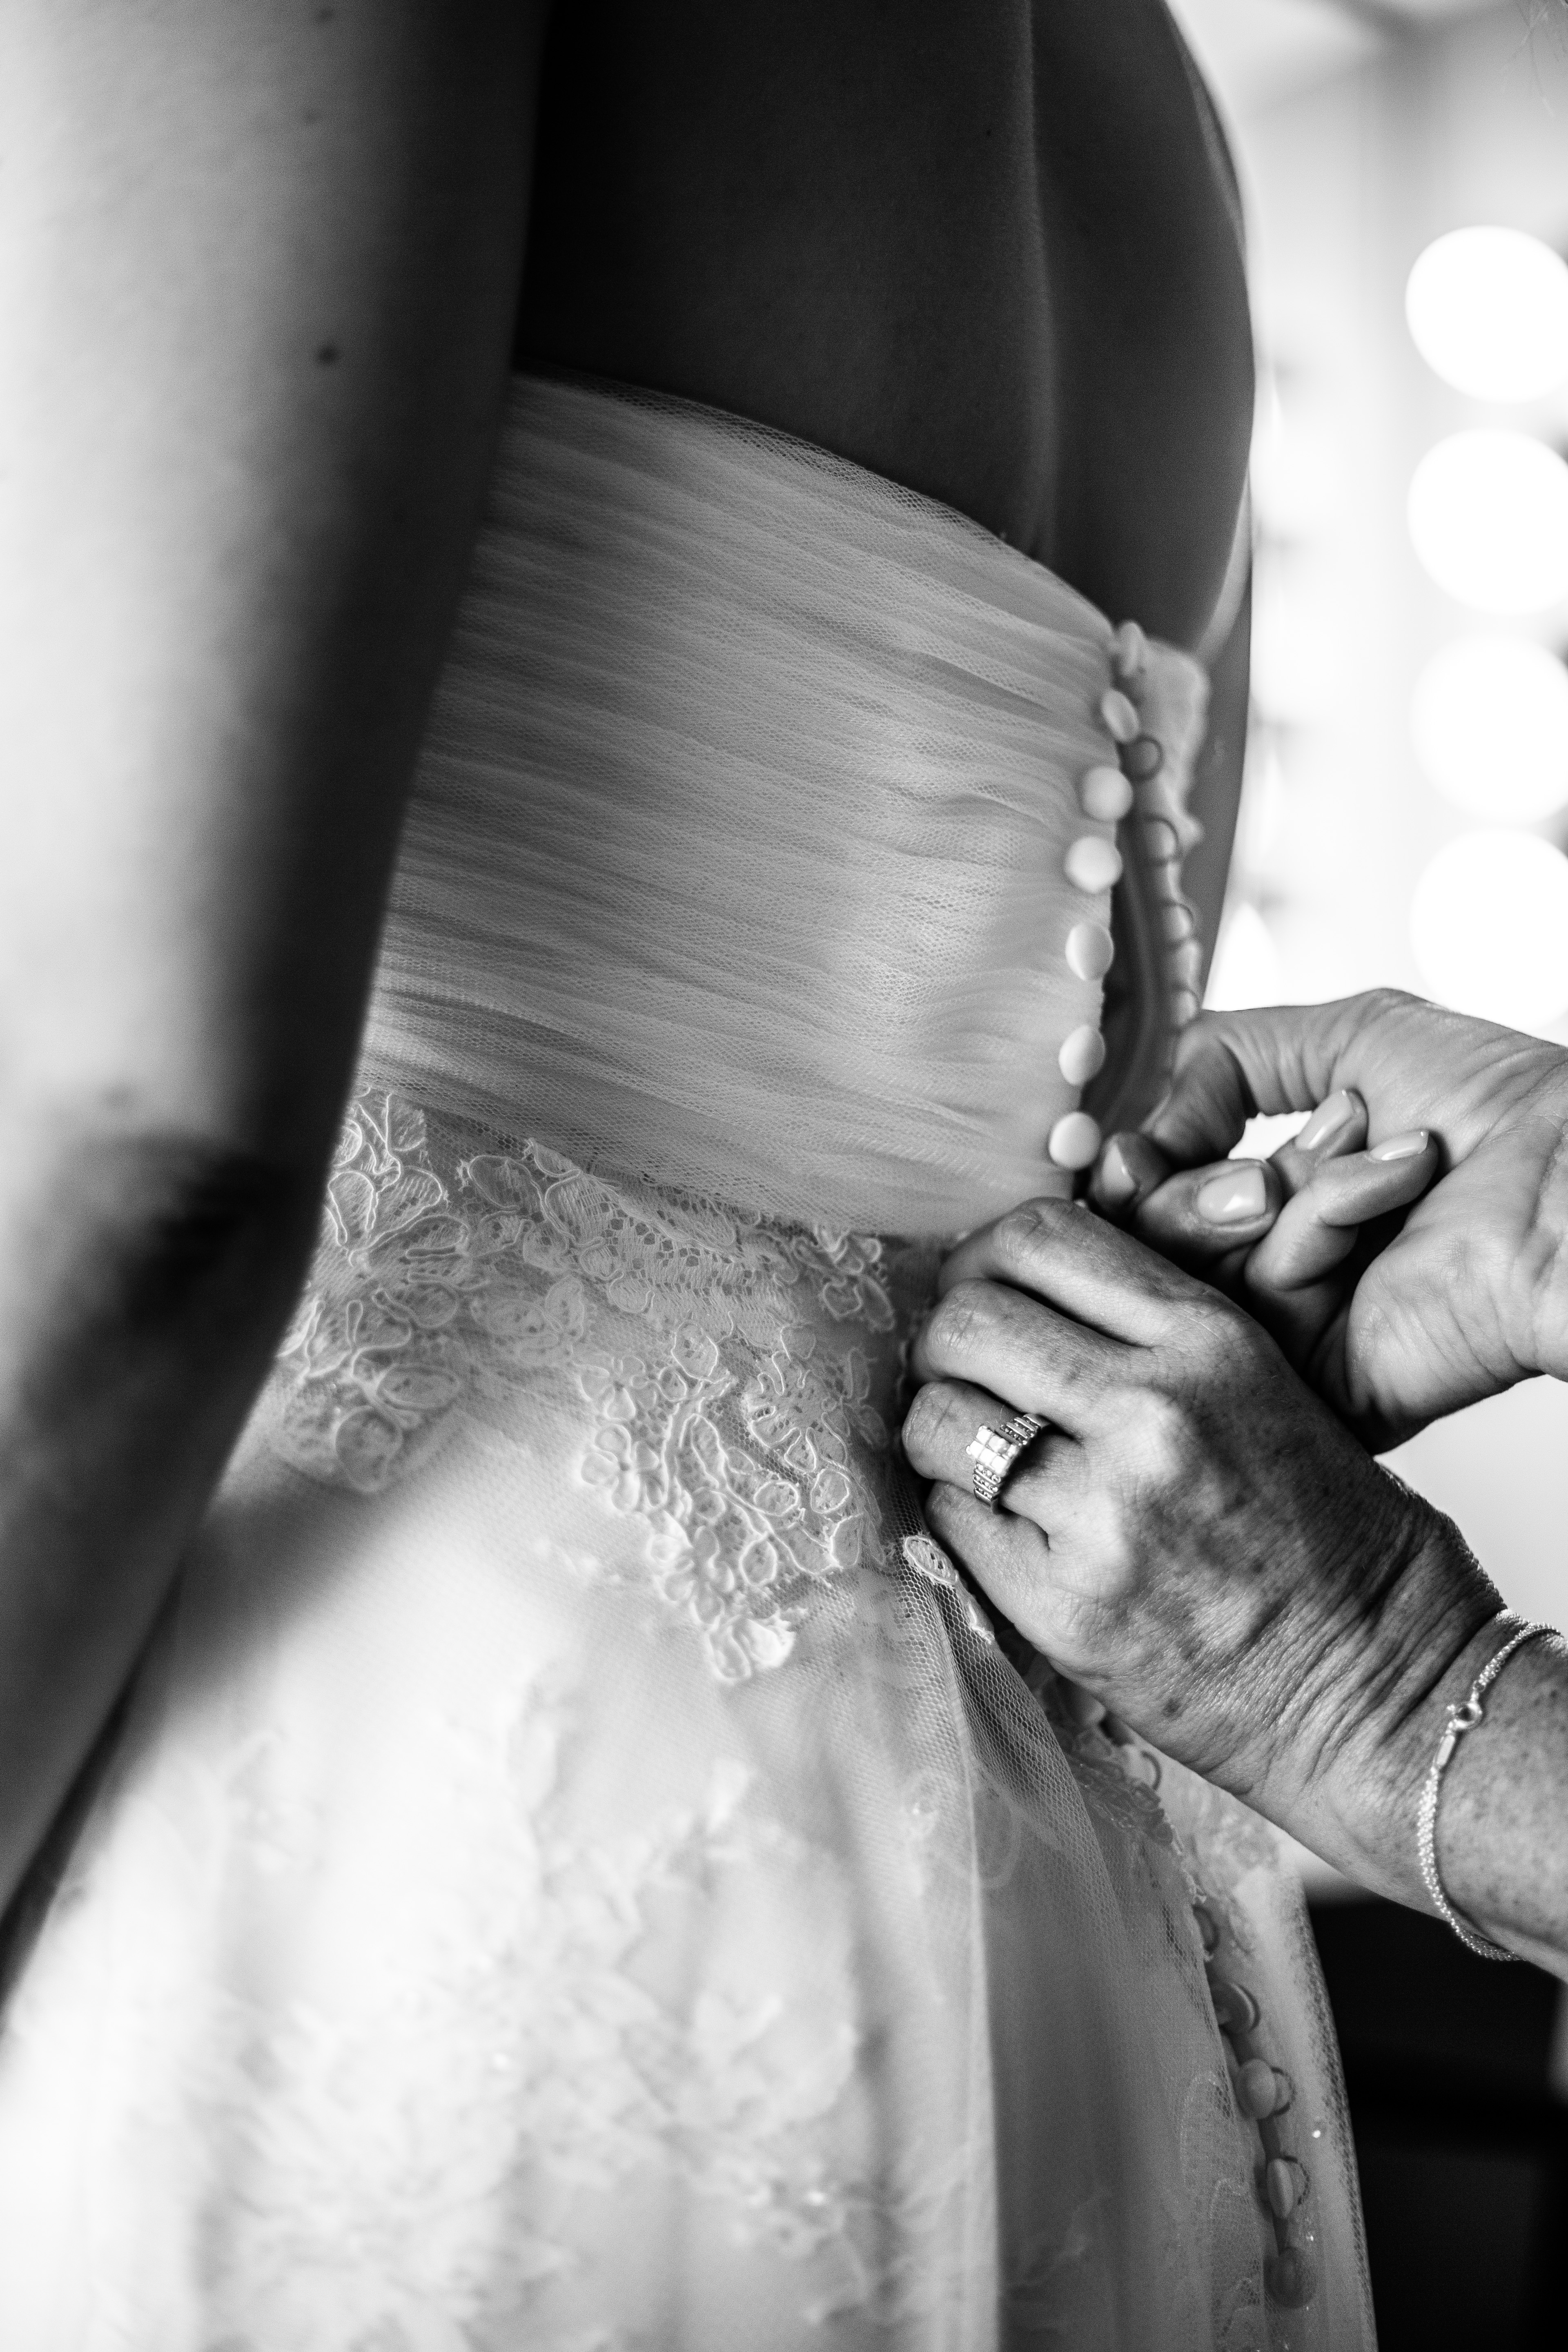 Black and white close up image of the mother of the bride's hands buttoning up the bride's sweetheart neckline wedding gown with lace detail